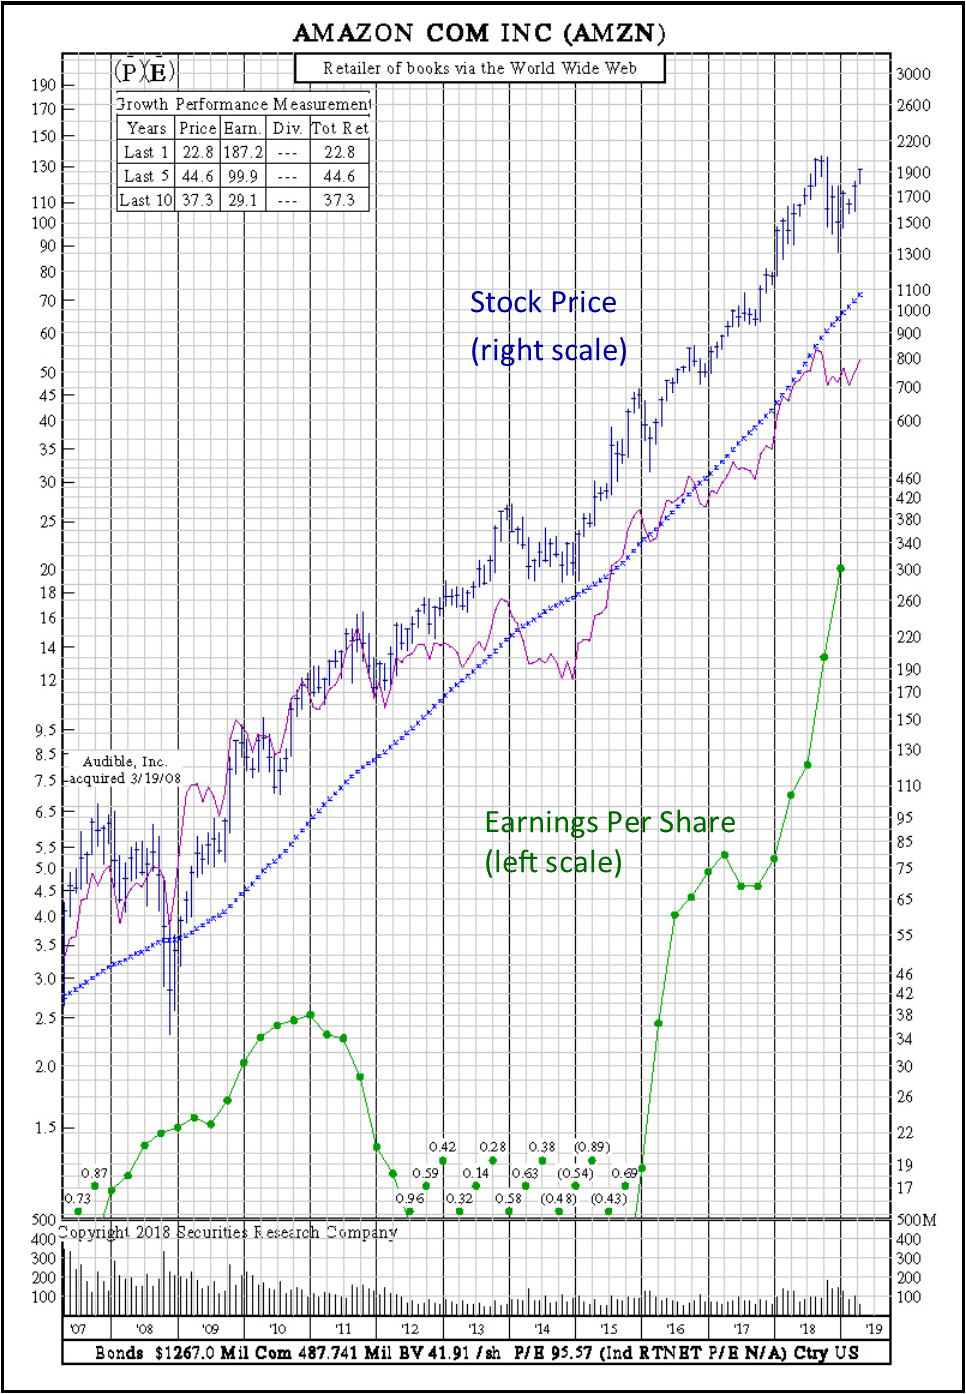 earnings per share growth stock amazon